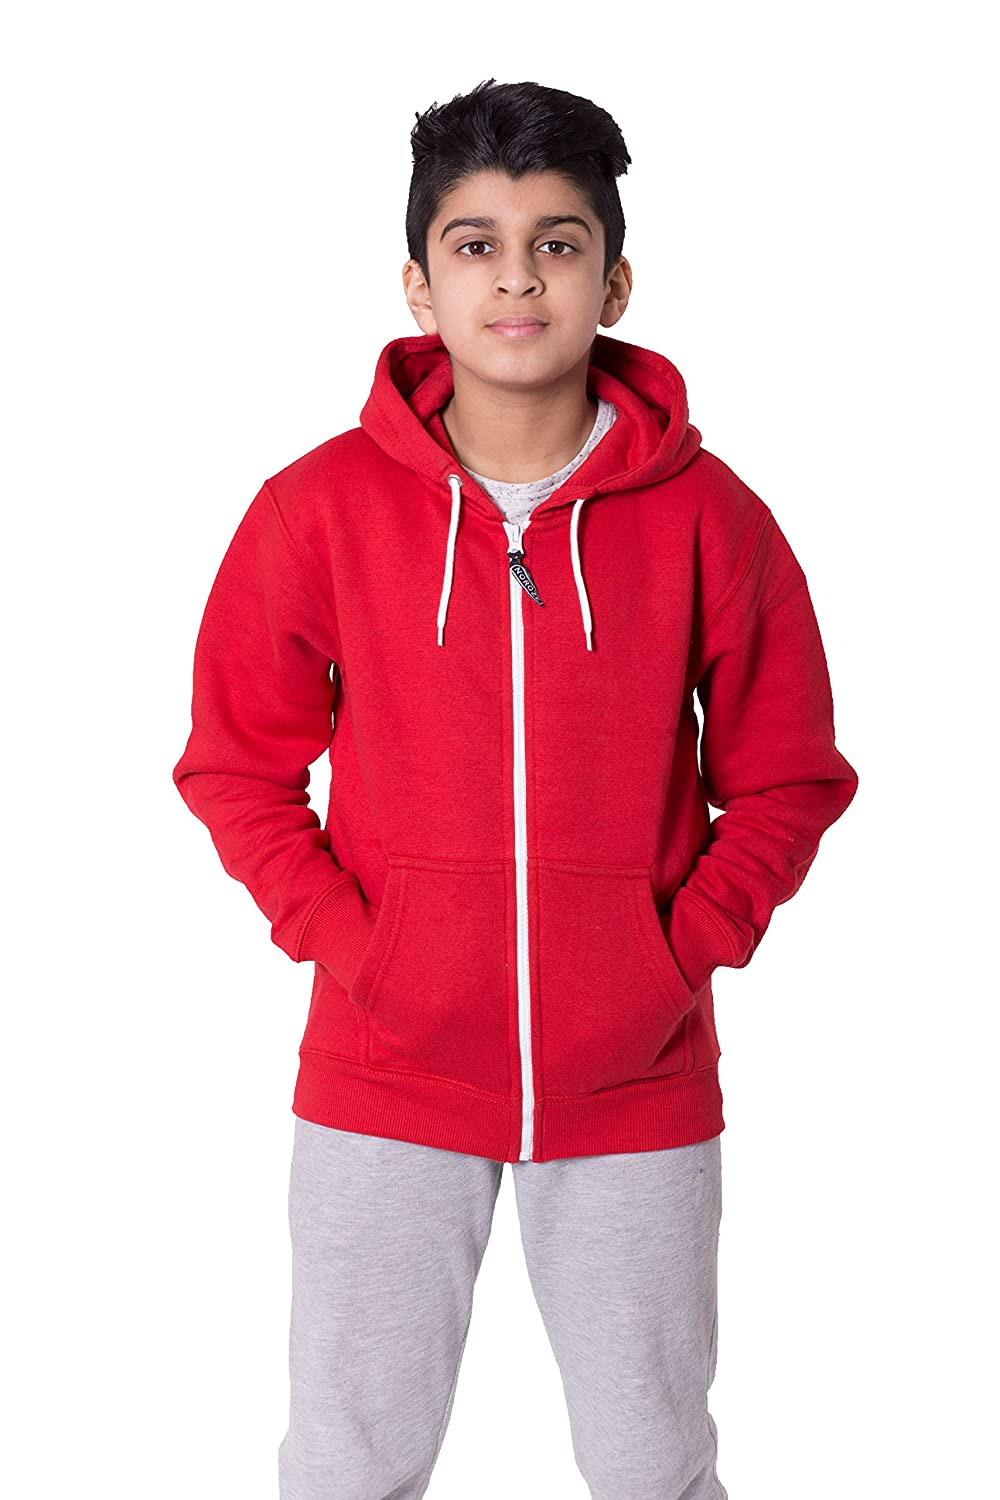 Noroze Boys Girls Plain Fleece Hoodie Full Length Sleeve Sweatshirt Top Age 5-13 Nrz-3991-5